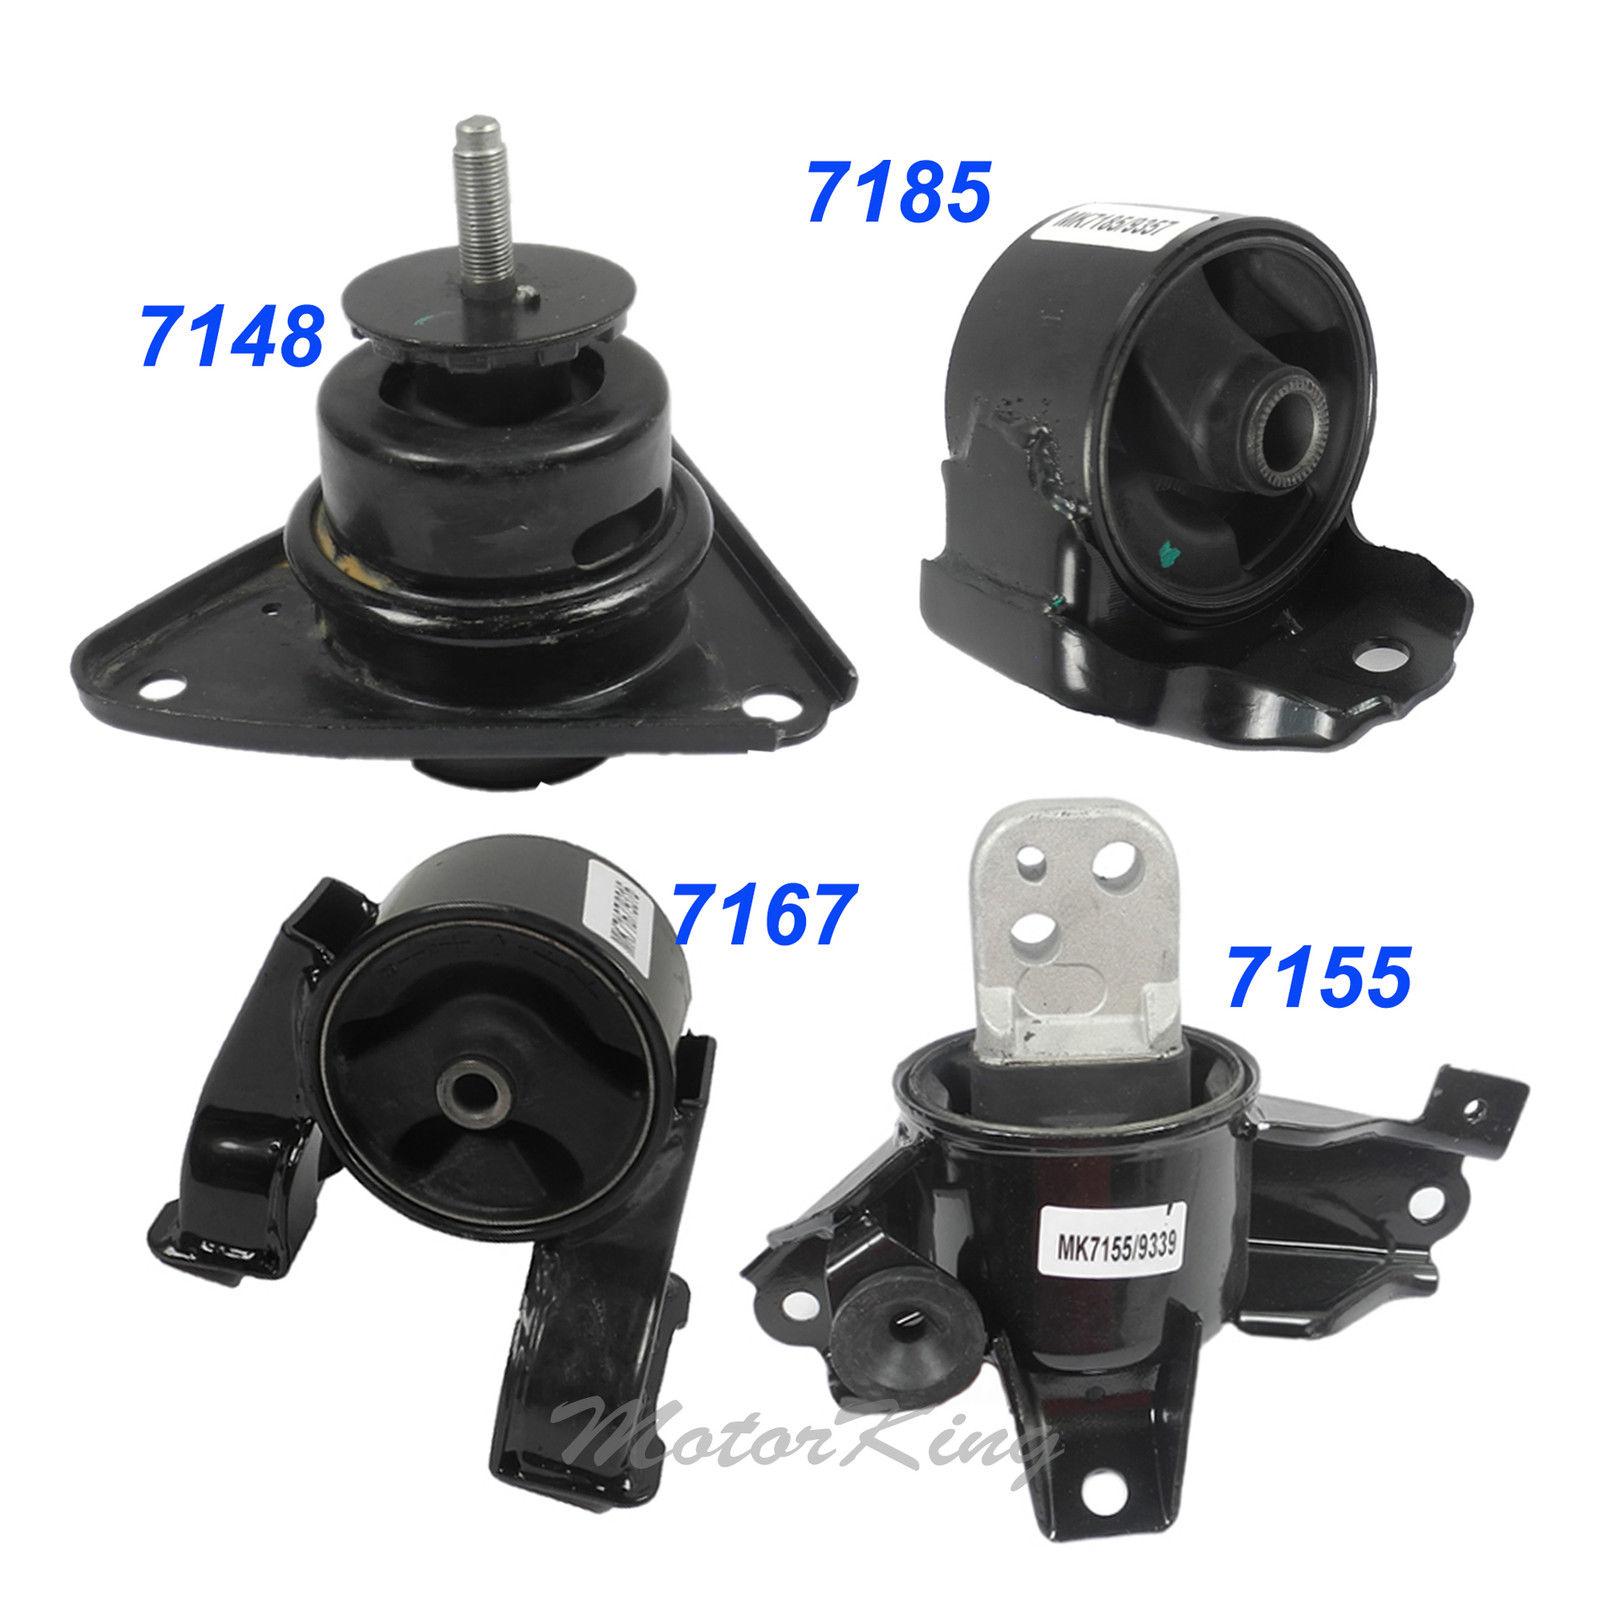 For 07-11 Elantra 2.0L Engine Motor /& Trans Mount Auto 7155 7148 7167 7185 M1277